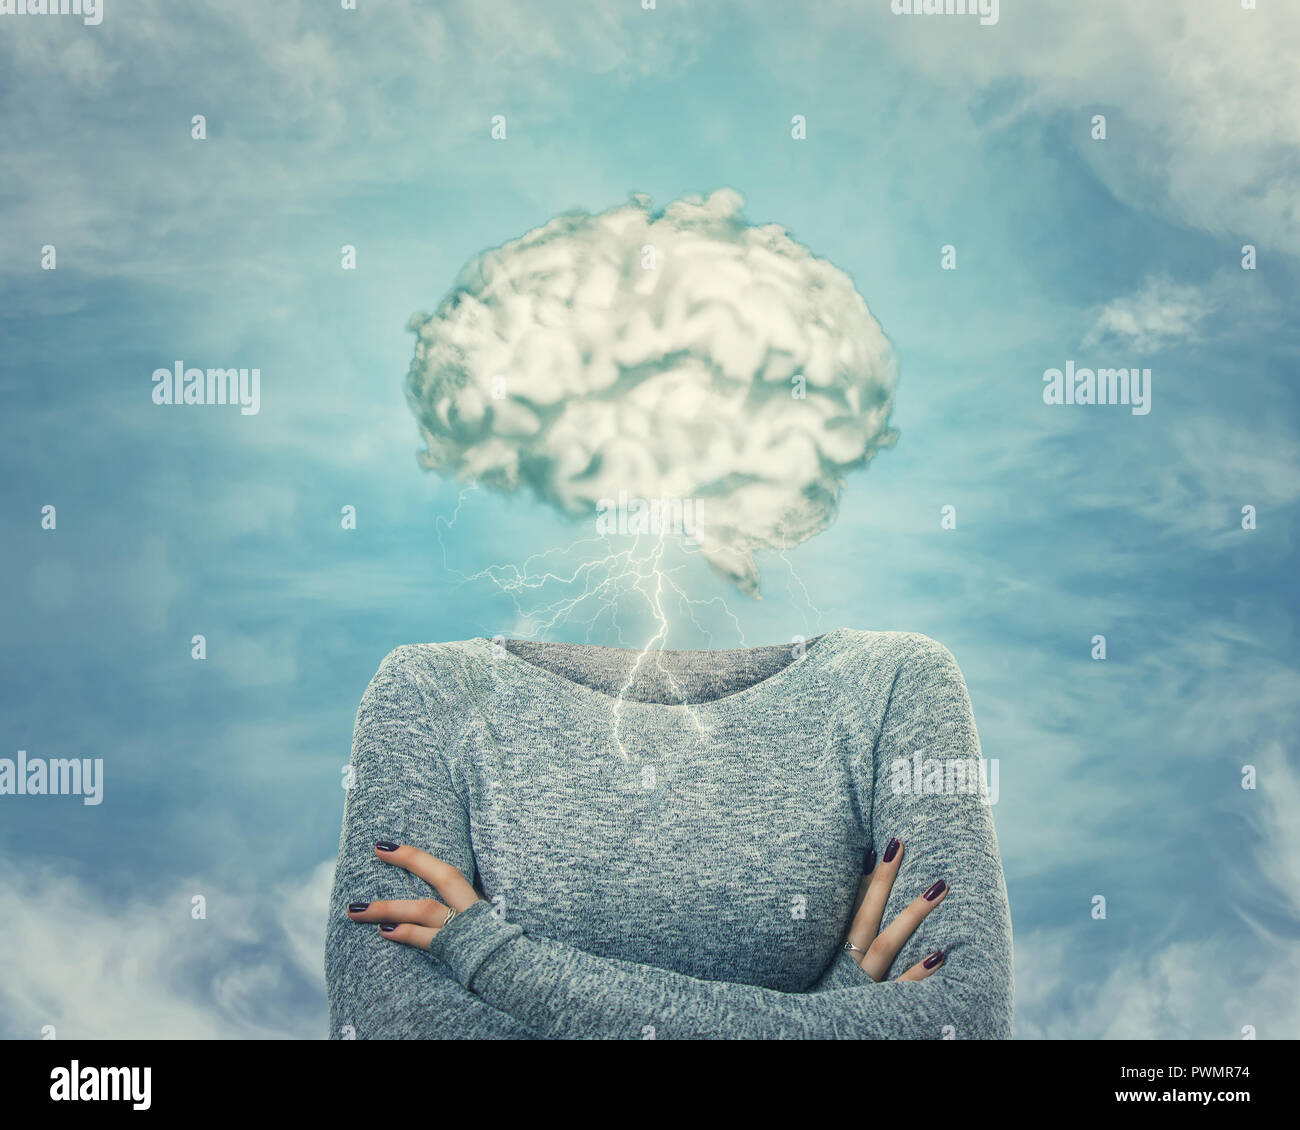 Brainstorm concept as woman has invisible face and cloud shaped brain instead of head. Incognito introvert hide identity. Head in the clouds person so - Stock Image